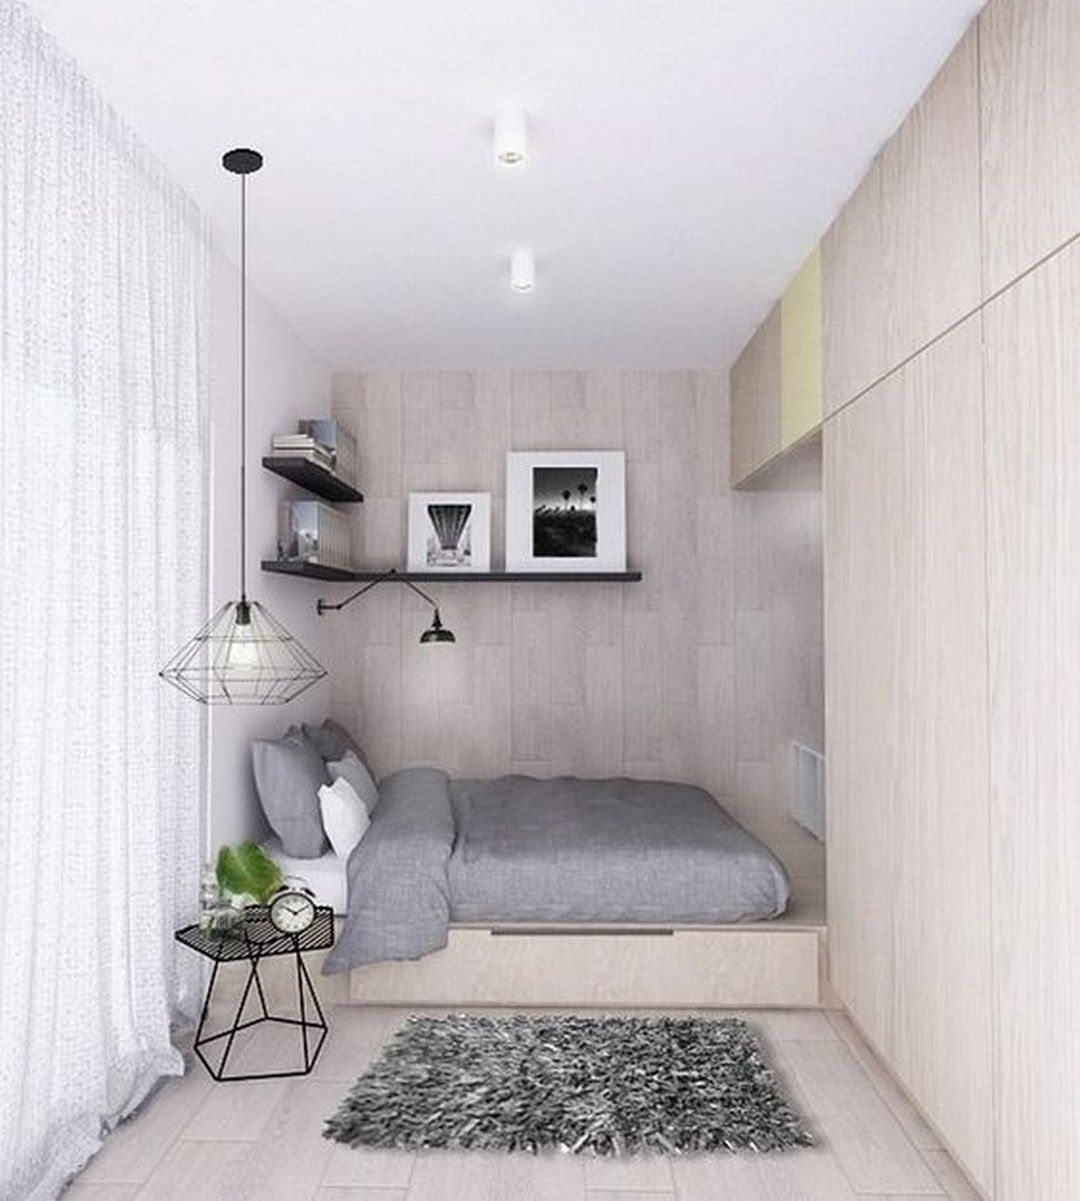 Entirely Obsessed Of These Cute And Tiny Bedroom Ideas For Girls  Goodnewsarchitecture